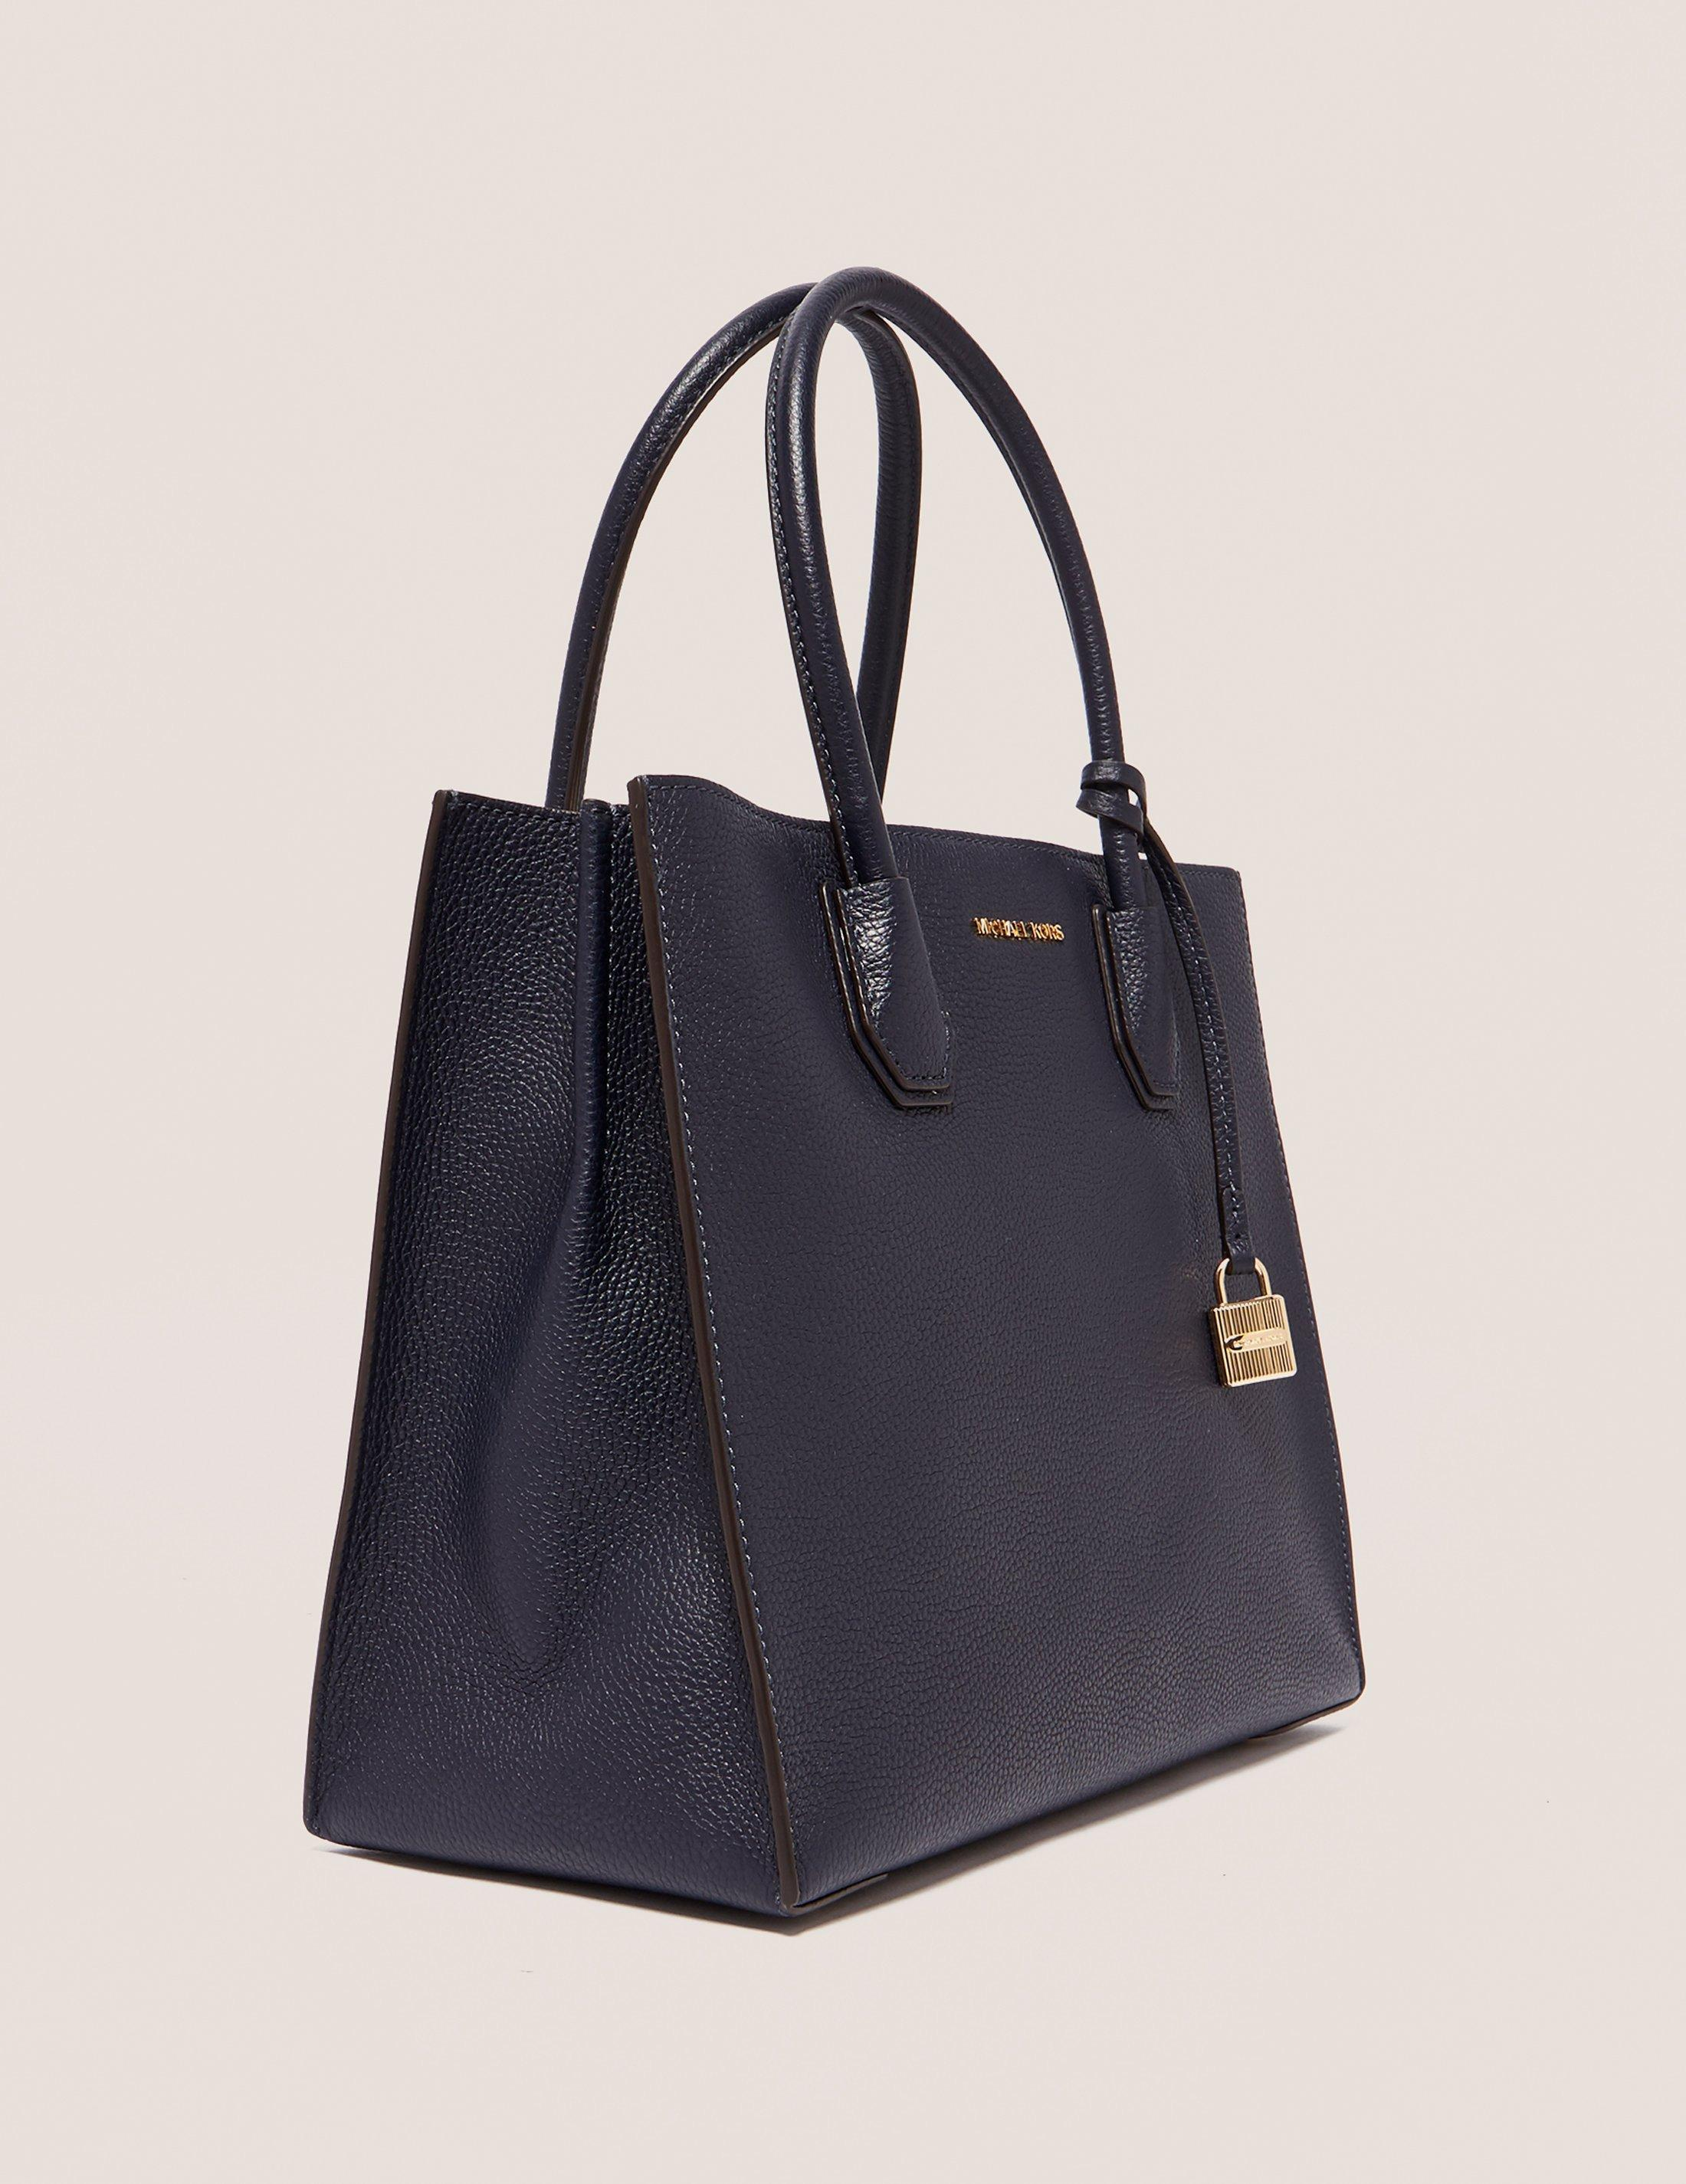 Michael Kors Leather Womens Mercer Large Convertible Tote Bag Navy in Blue